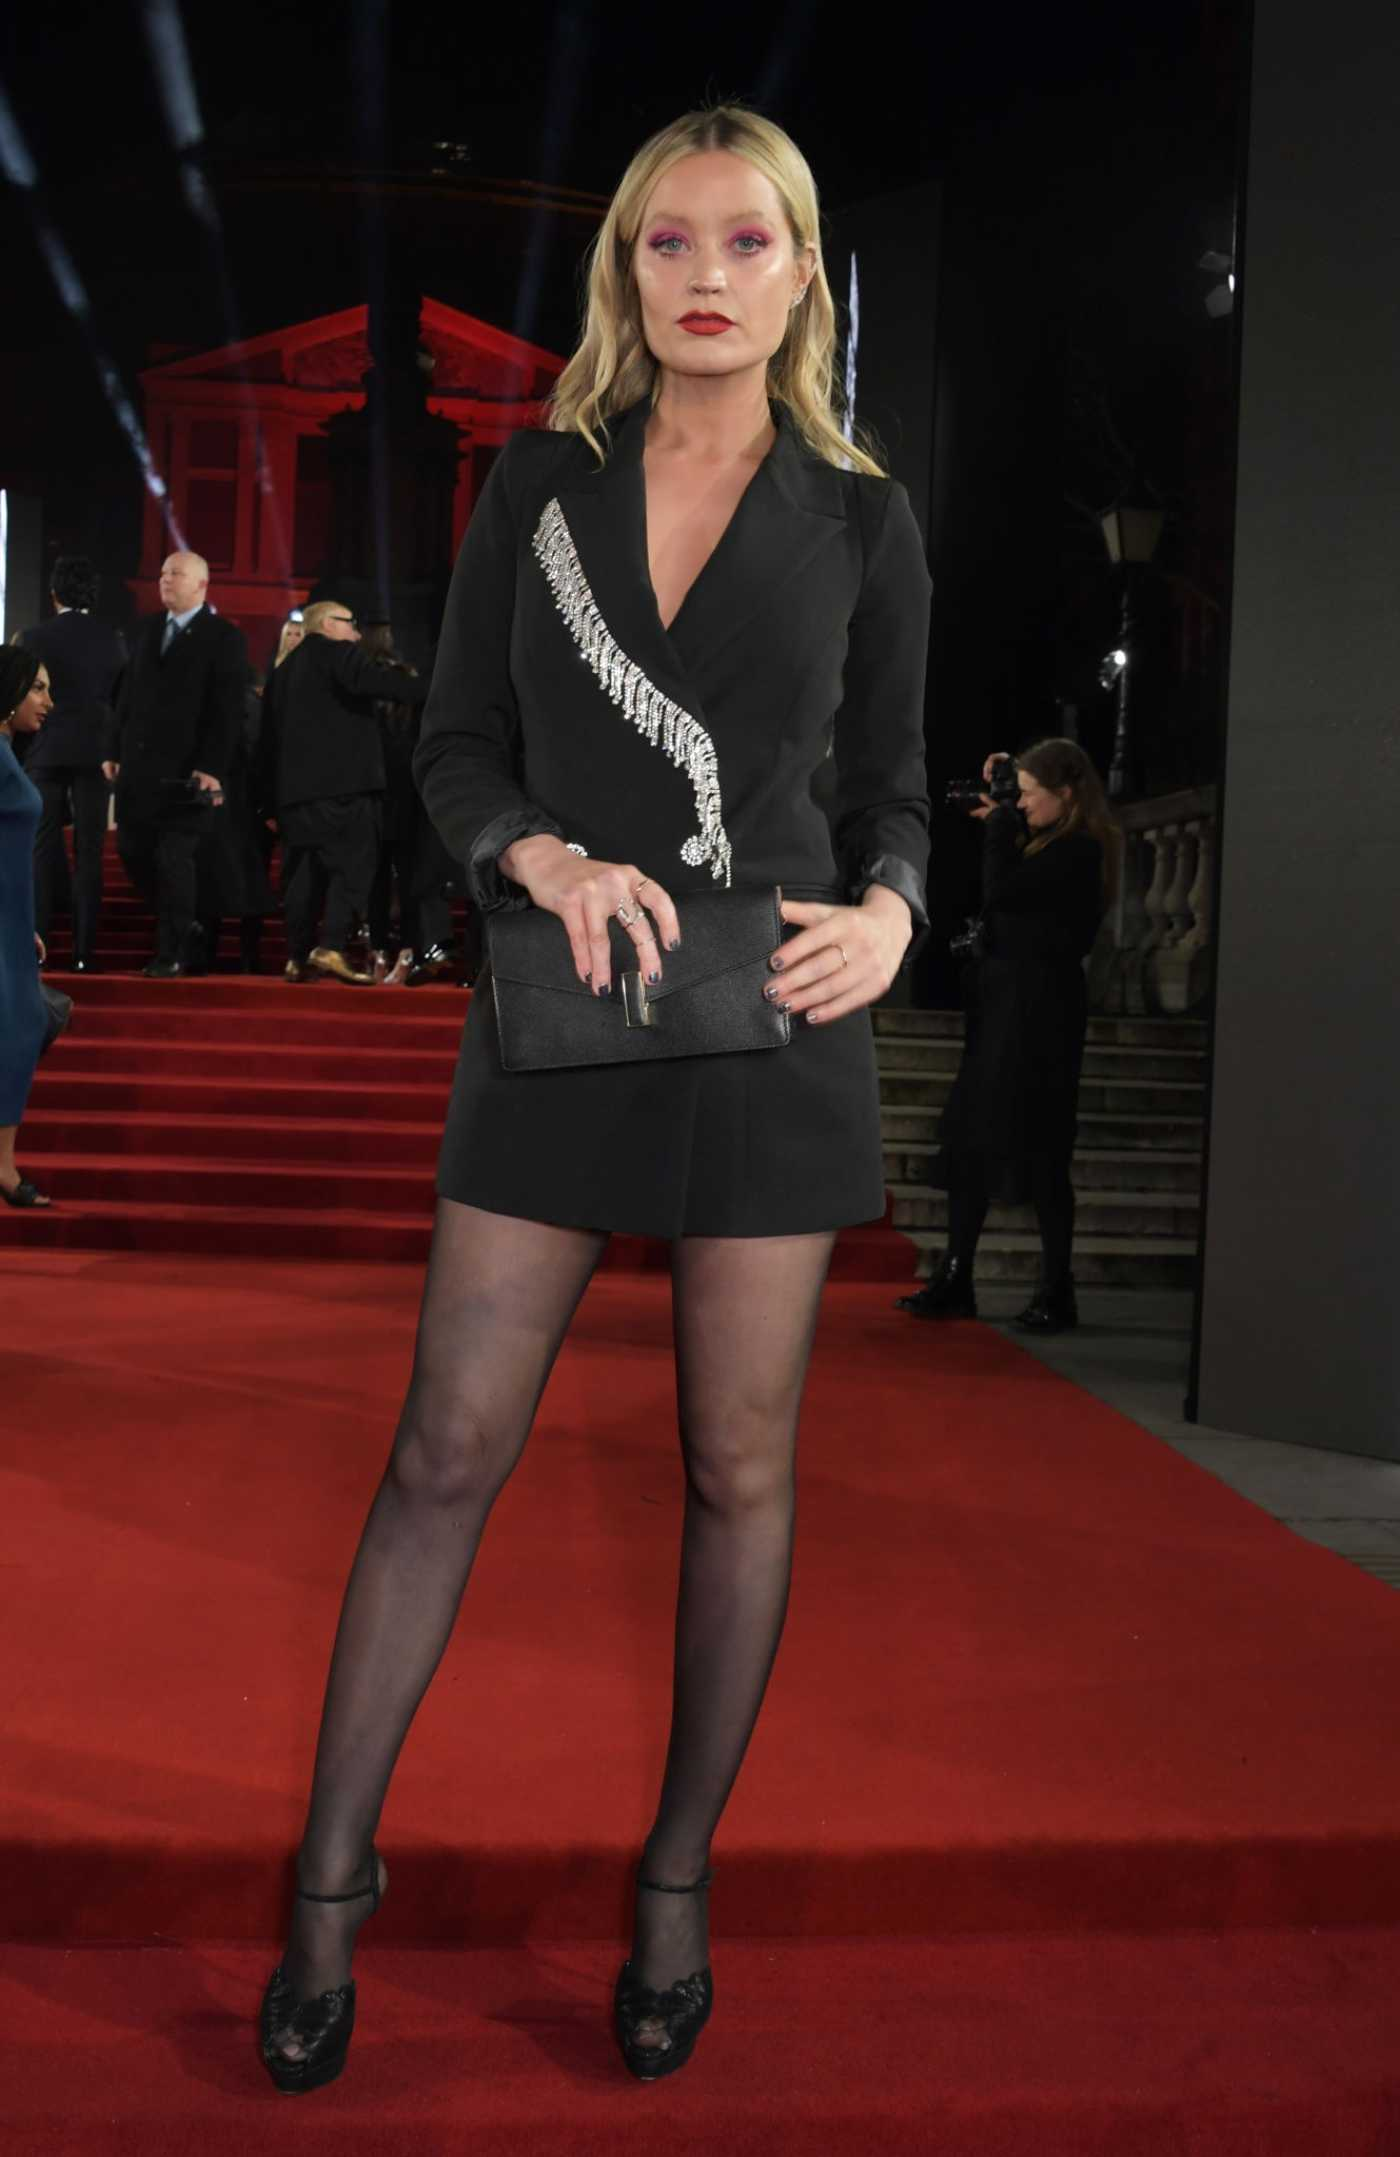 Laura Whitmore Attends 2019 Fashion Awards at Royal Albert Hall in London 12/02/2019